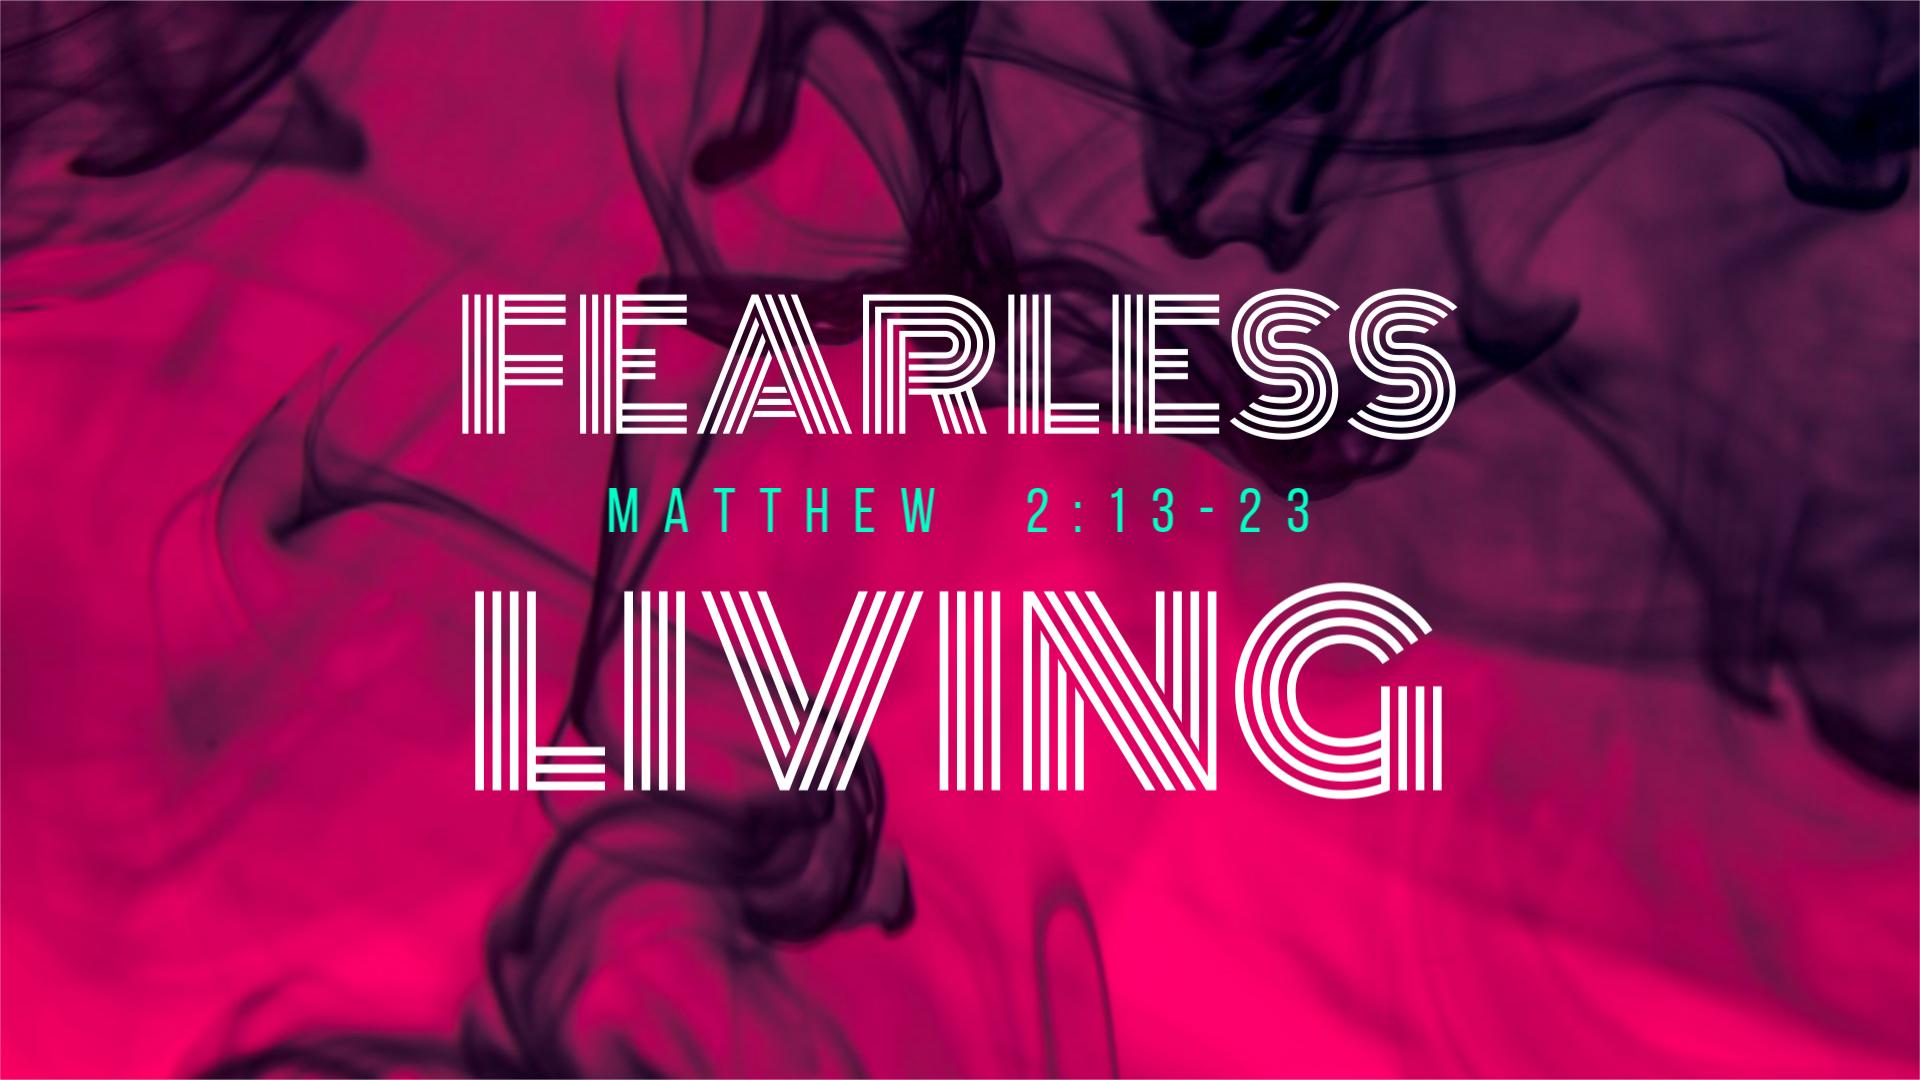 FEARLESS LIVING - Victory Christian Fellowship